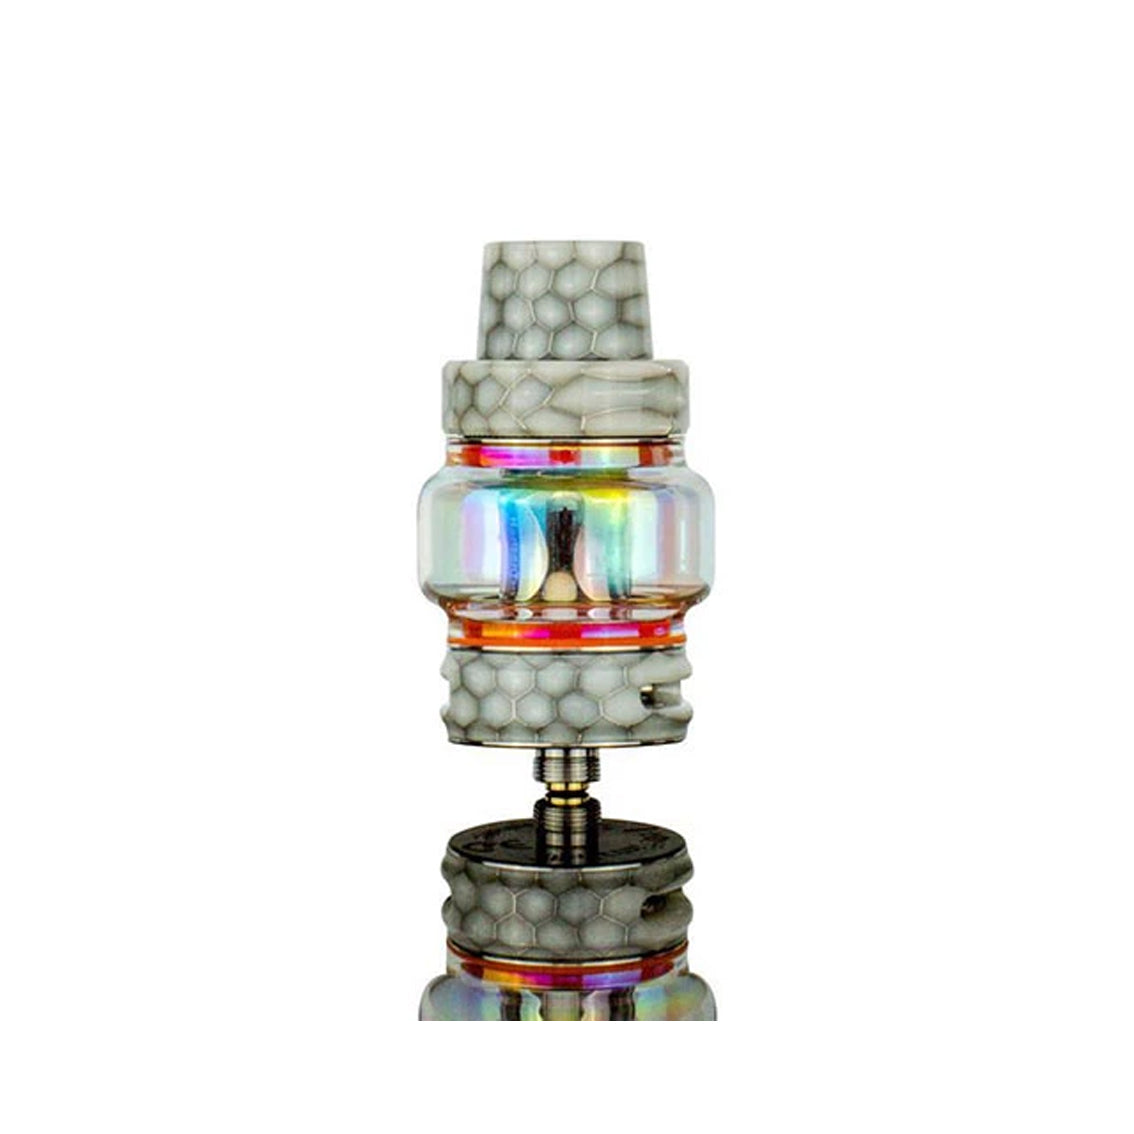 Horizon Tech Falcon Sub Ohm Tank - Resin Edition